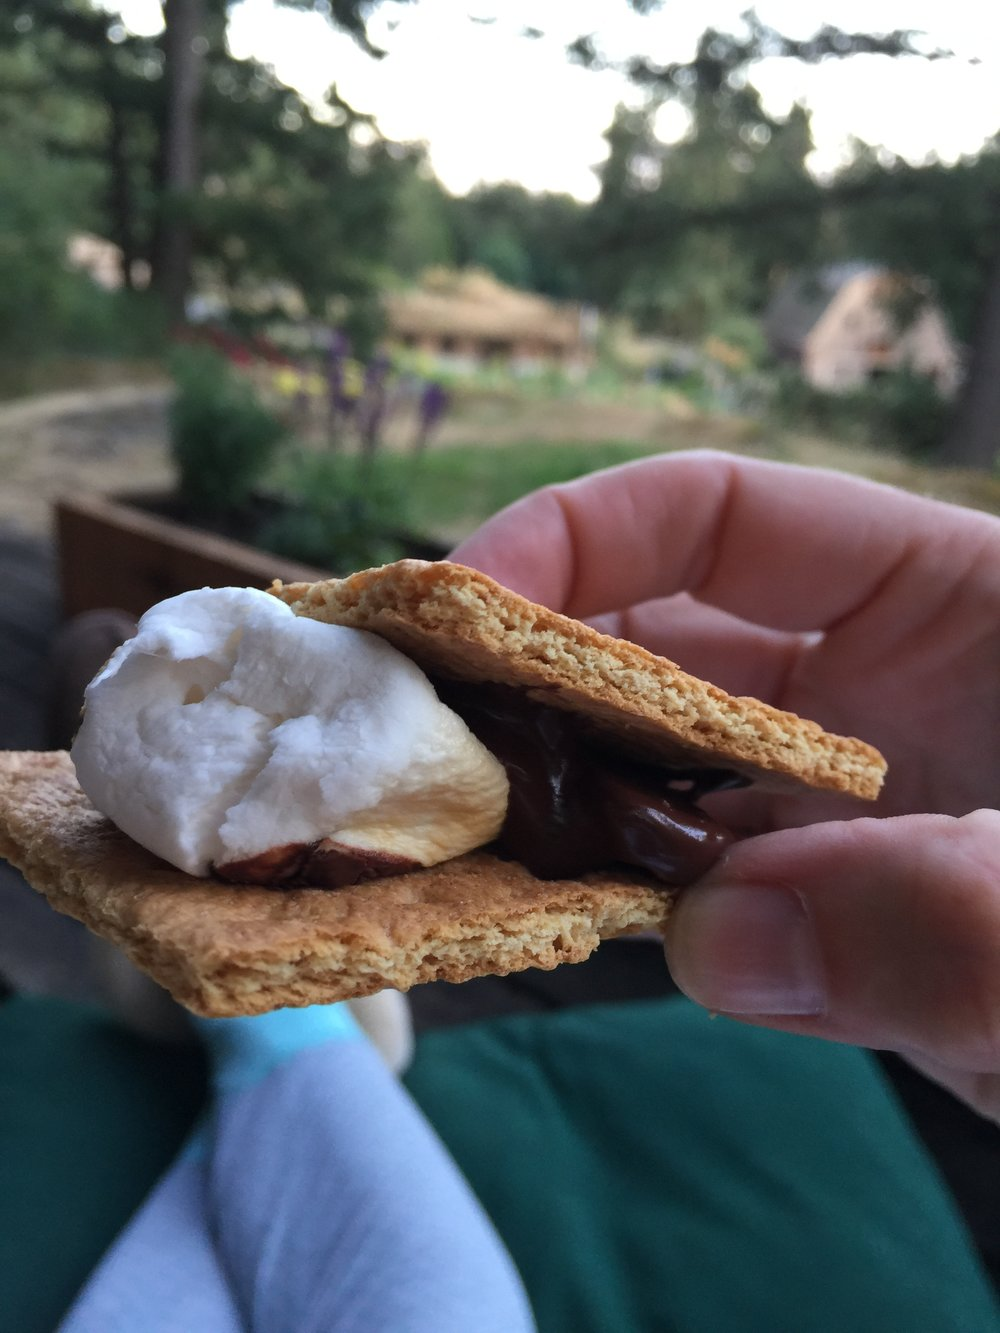 Ahhh S'mores